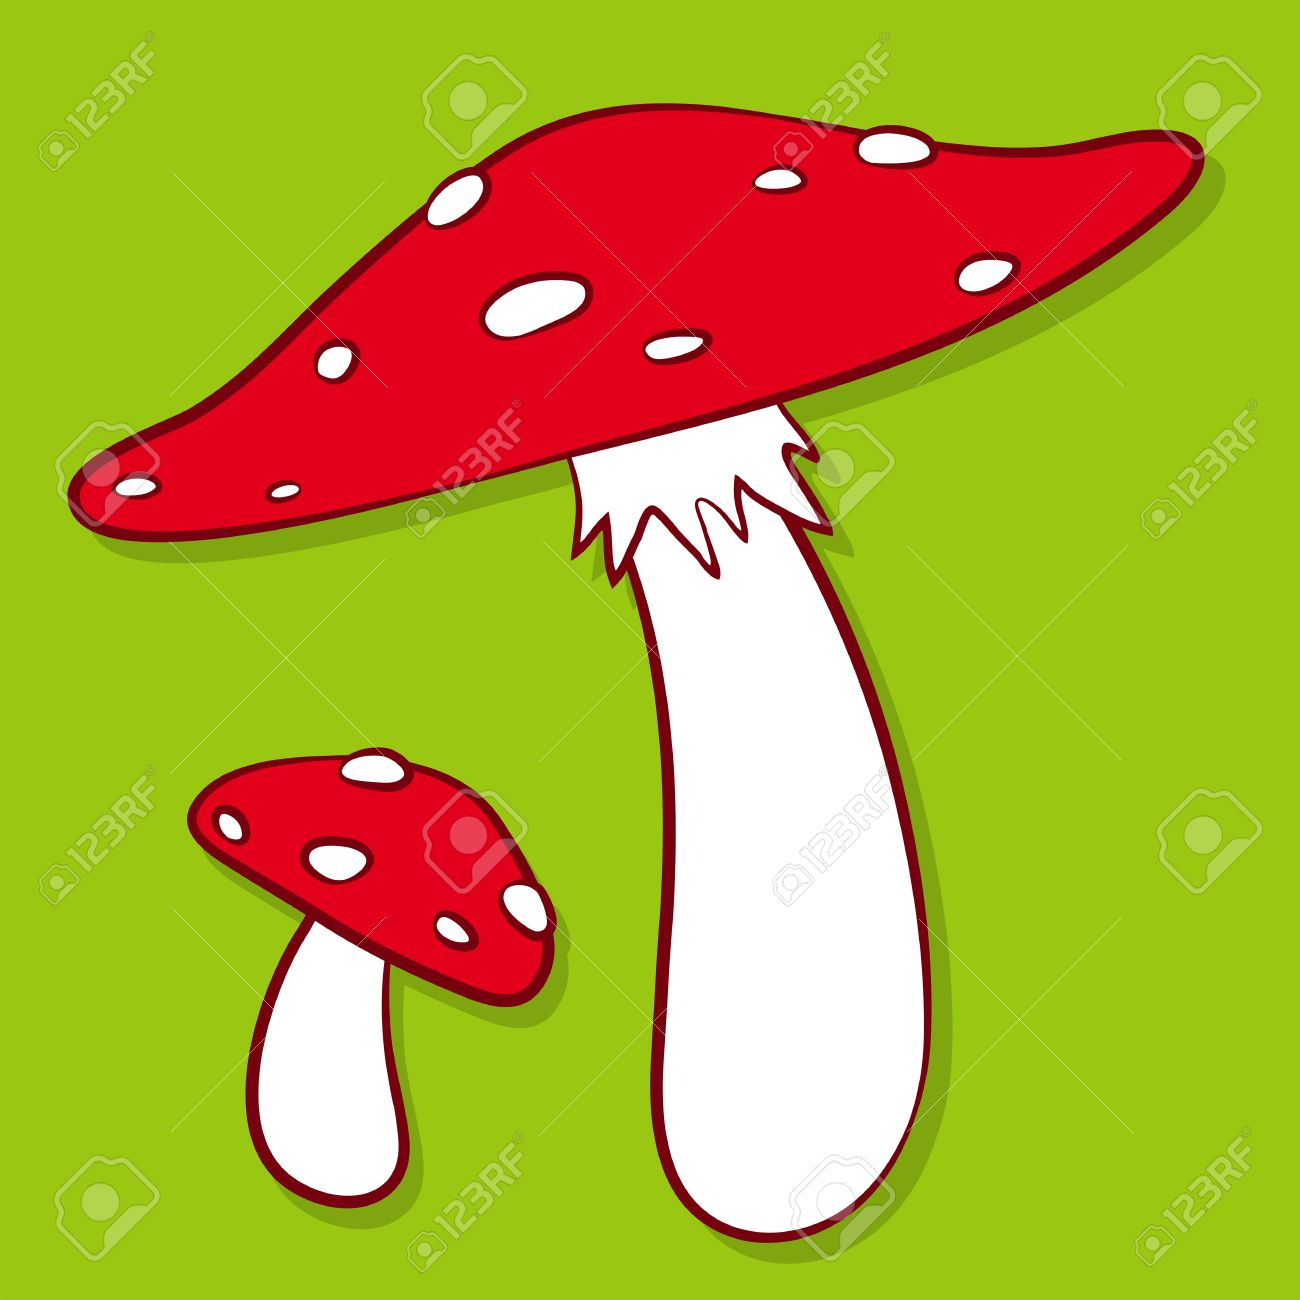 Cartoon Illustration Of Colourful Red Spotted Fly Agaric Mushrooms.